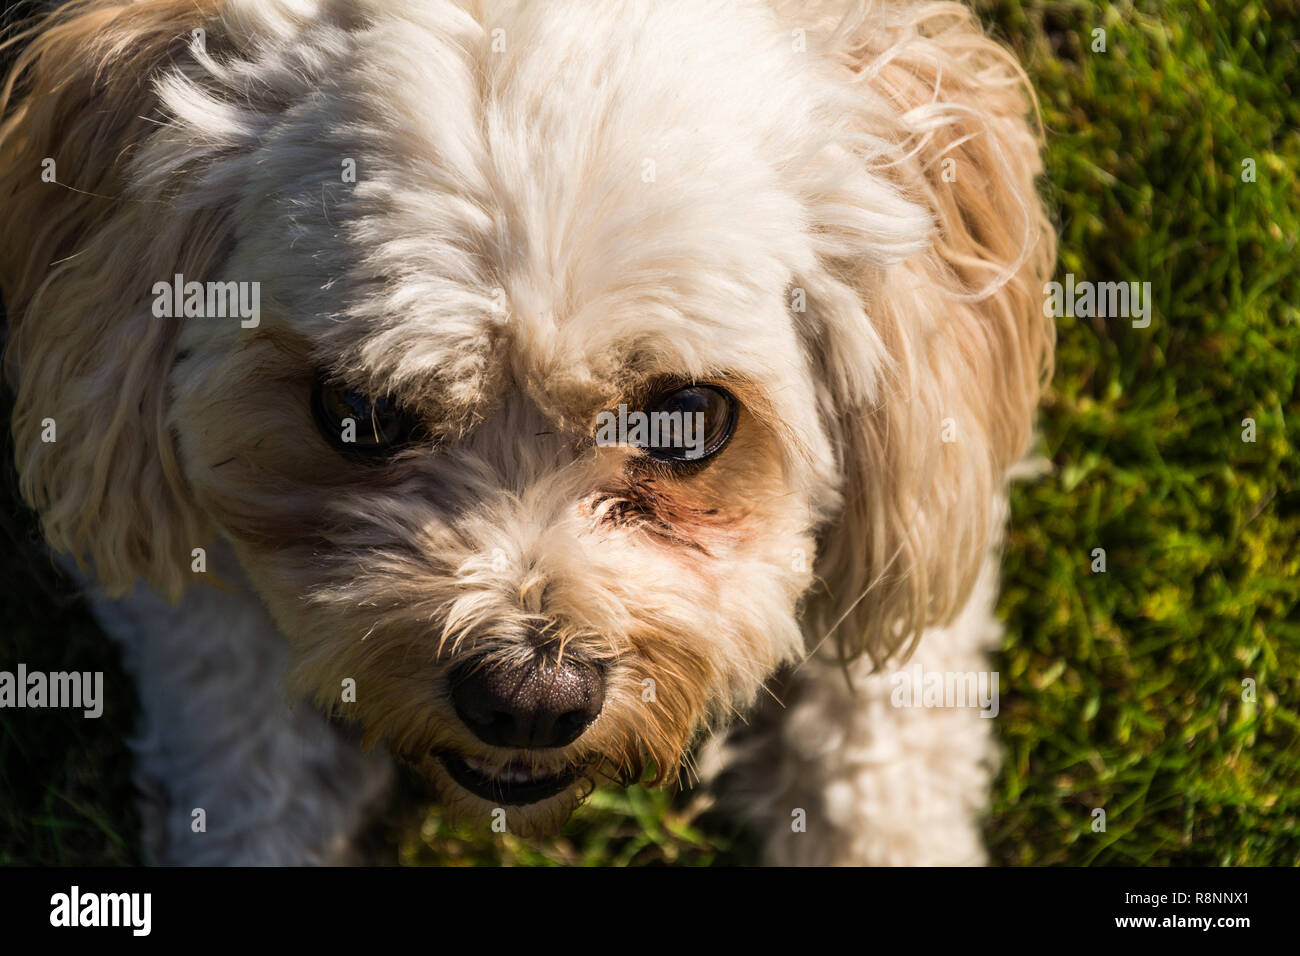 Portrait of a male Cavachon dog (Canis lupus familiaris) looking up at the camera in a menacing way. - Stock Image